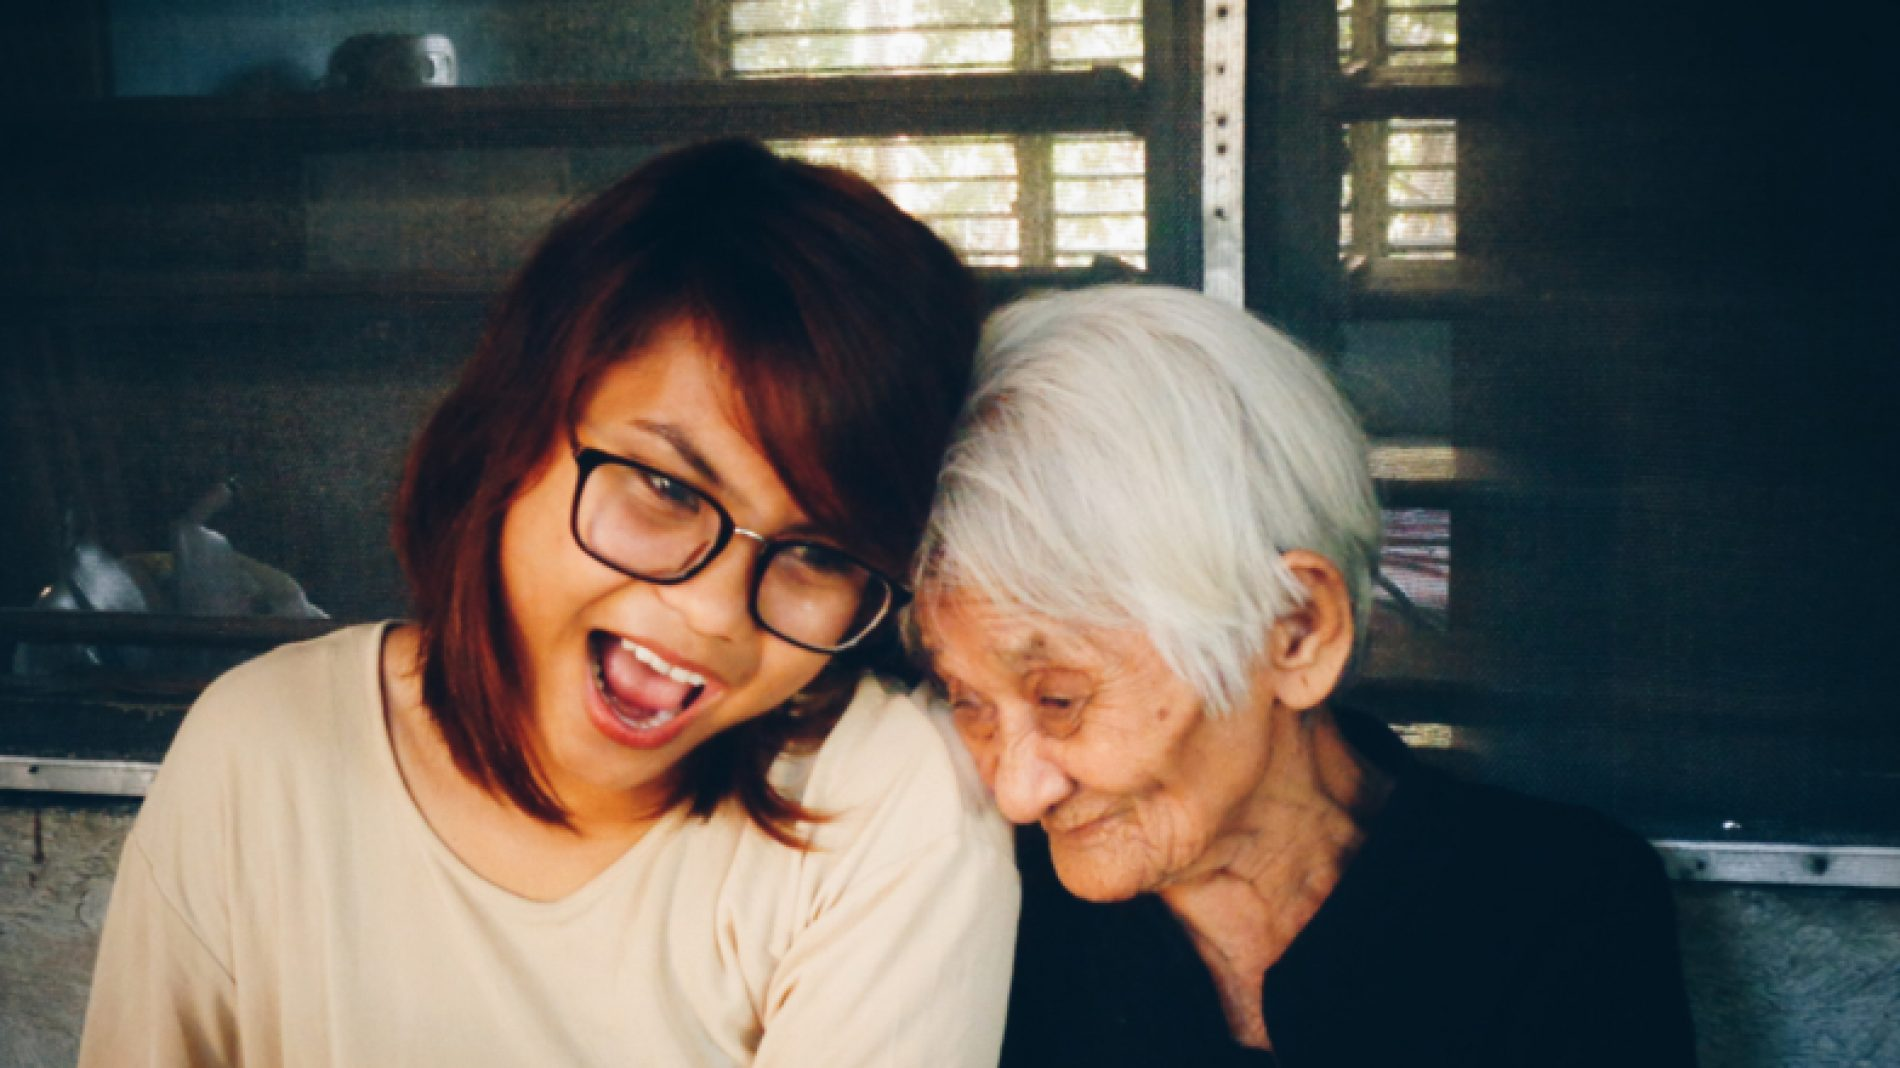 people-women-old-happiness-smiling-smile-smile-young-candid-grandmother-laughter-bff_t20_VoEdnl-sFCH6V